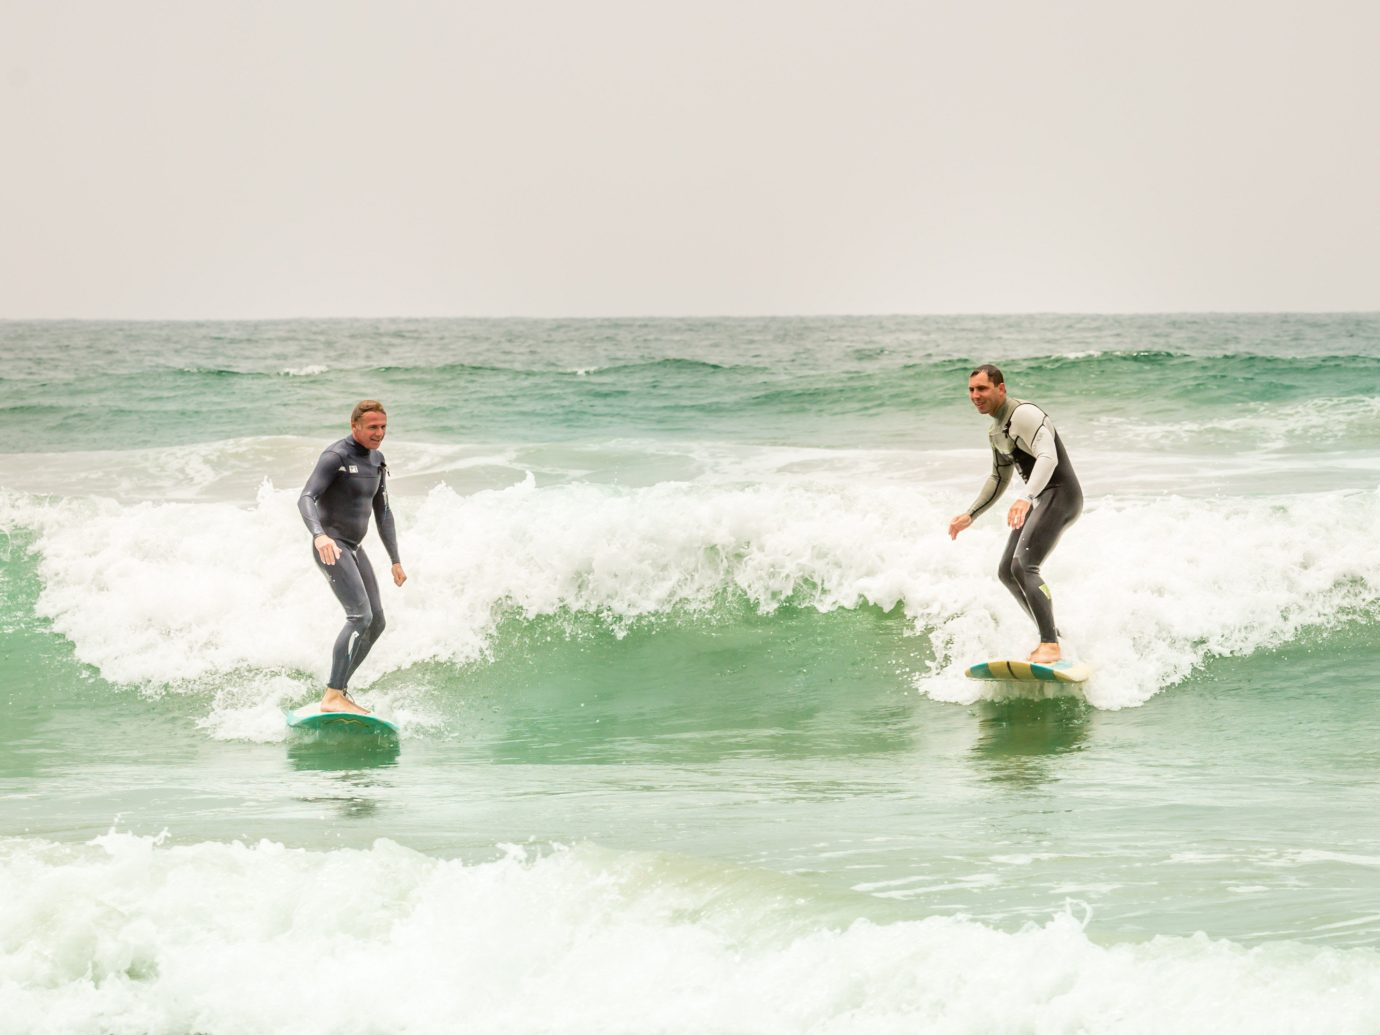 Hotels water surfing water sport wave sky outdoor riding Sport Ocean man sports wind wave boardsport surfboard surface water sports Sea surfing equipment and supplies skimboarding Beach extreme sport Coast individual sports